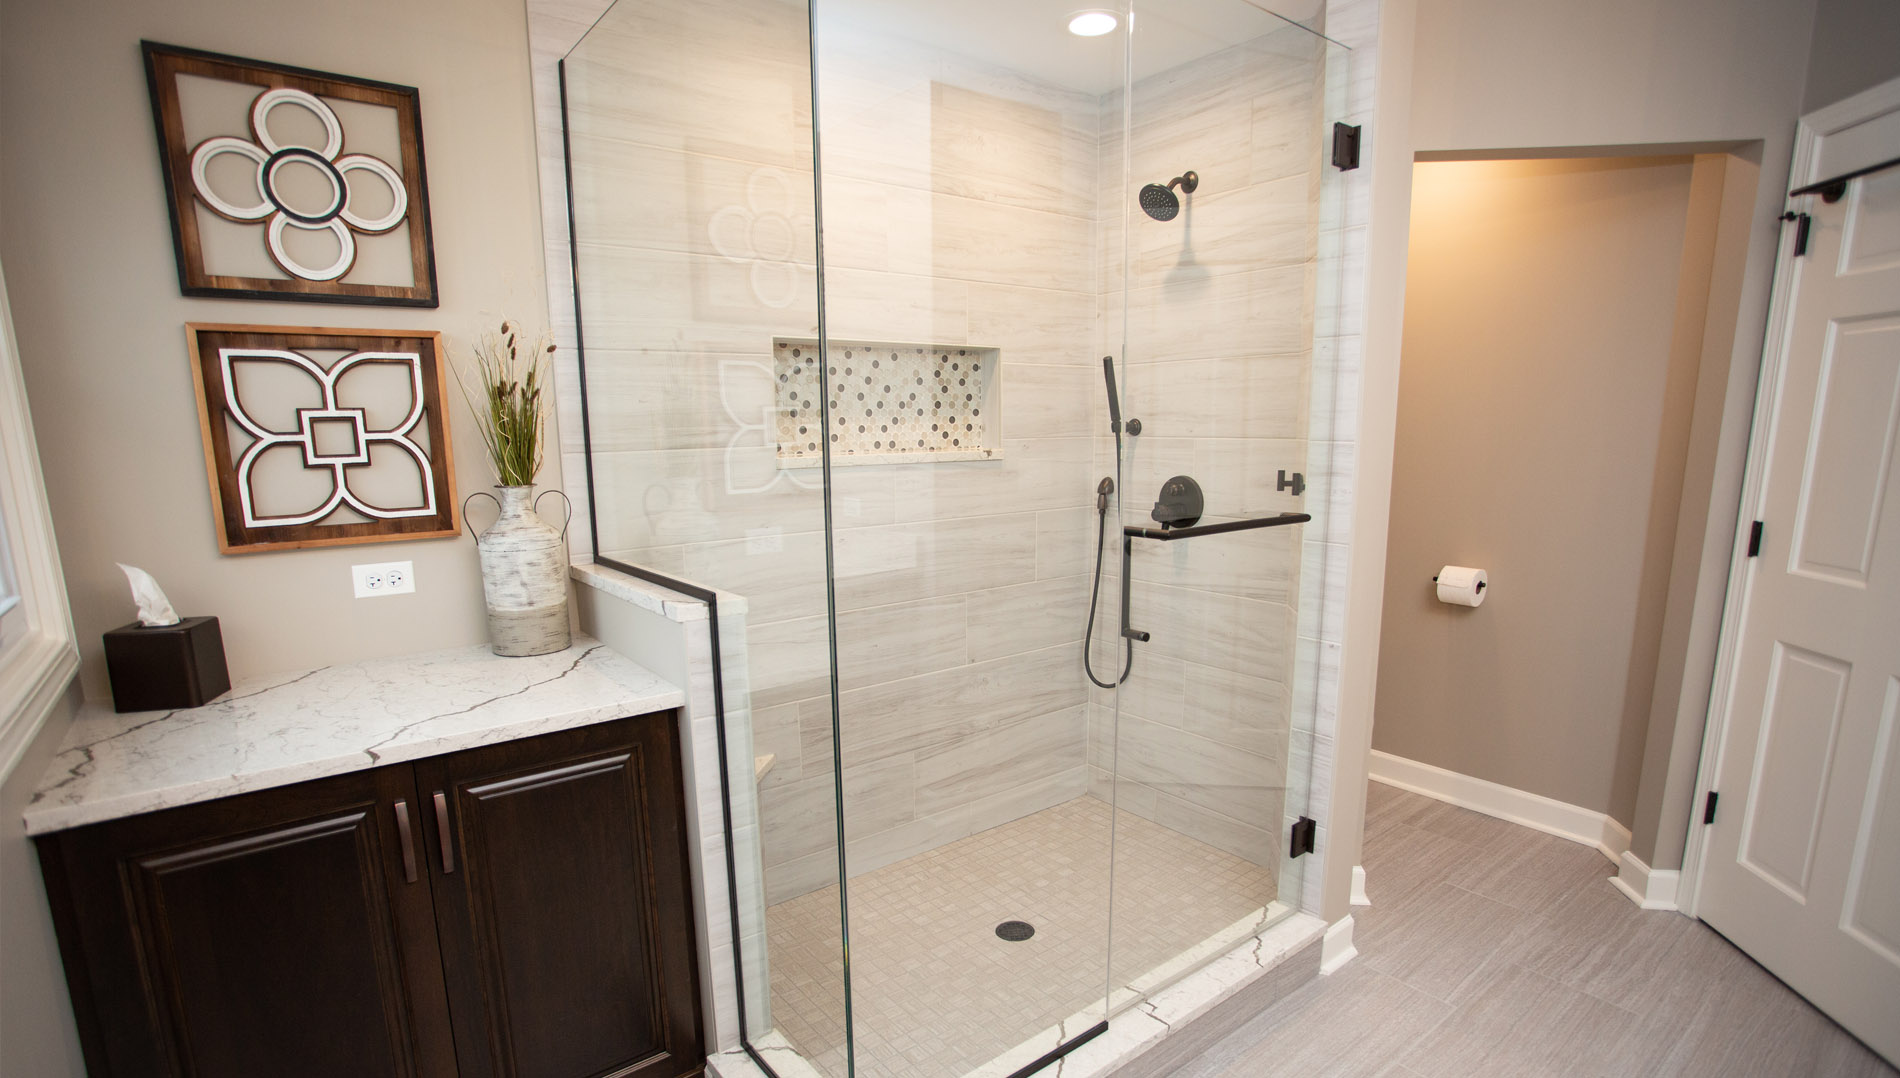 Large glassed in shower with storage cabinet and private water closet.